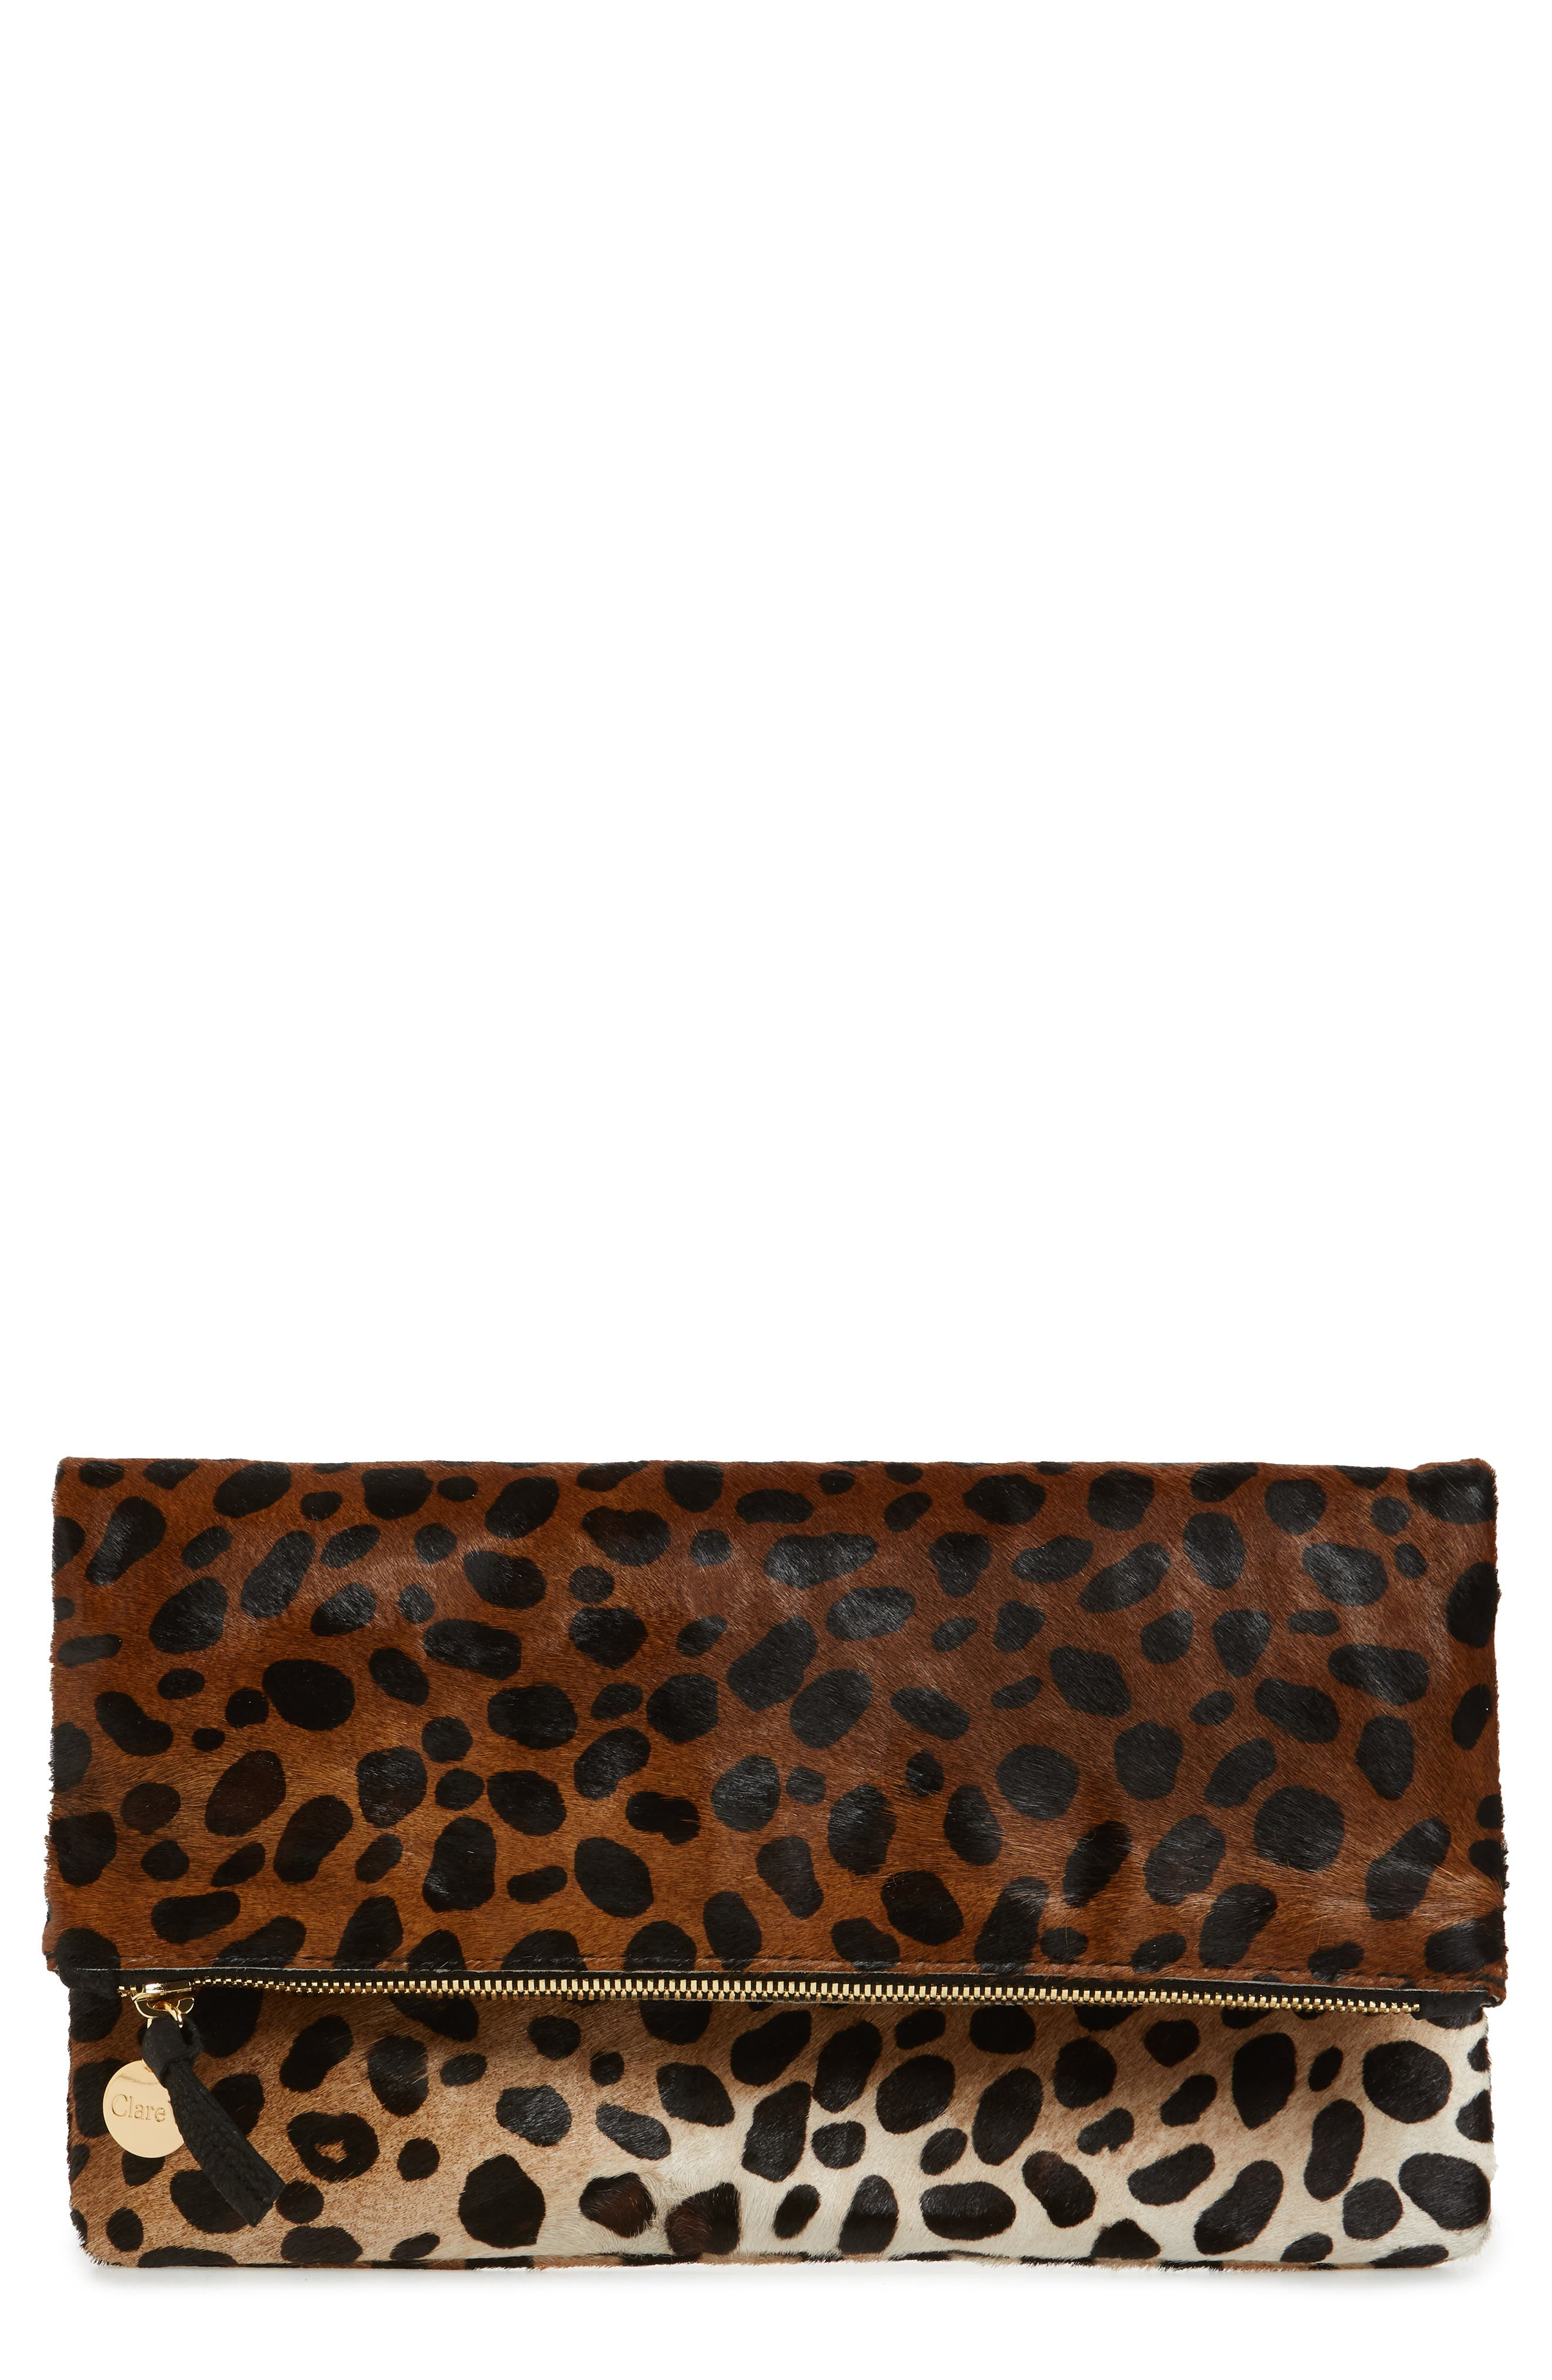 43302c91dfb6 Clutches   Evening Bags All Women